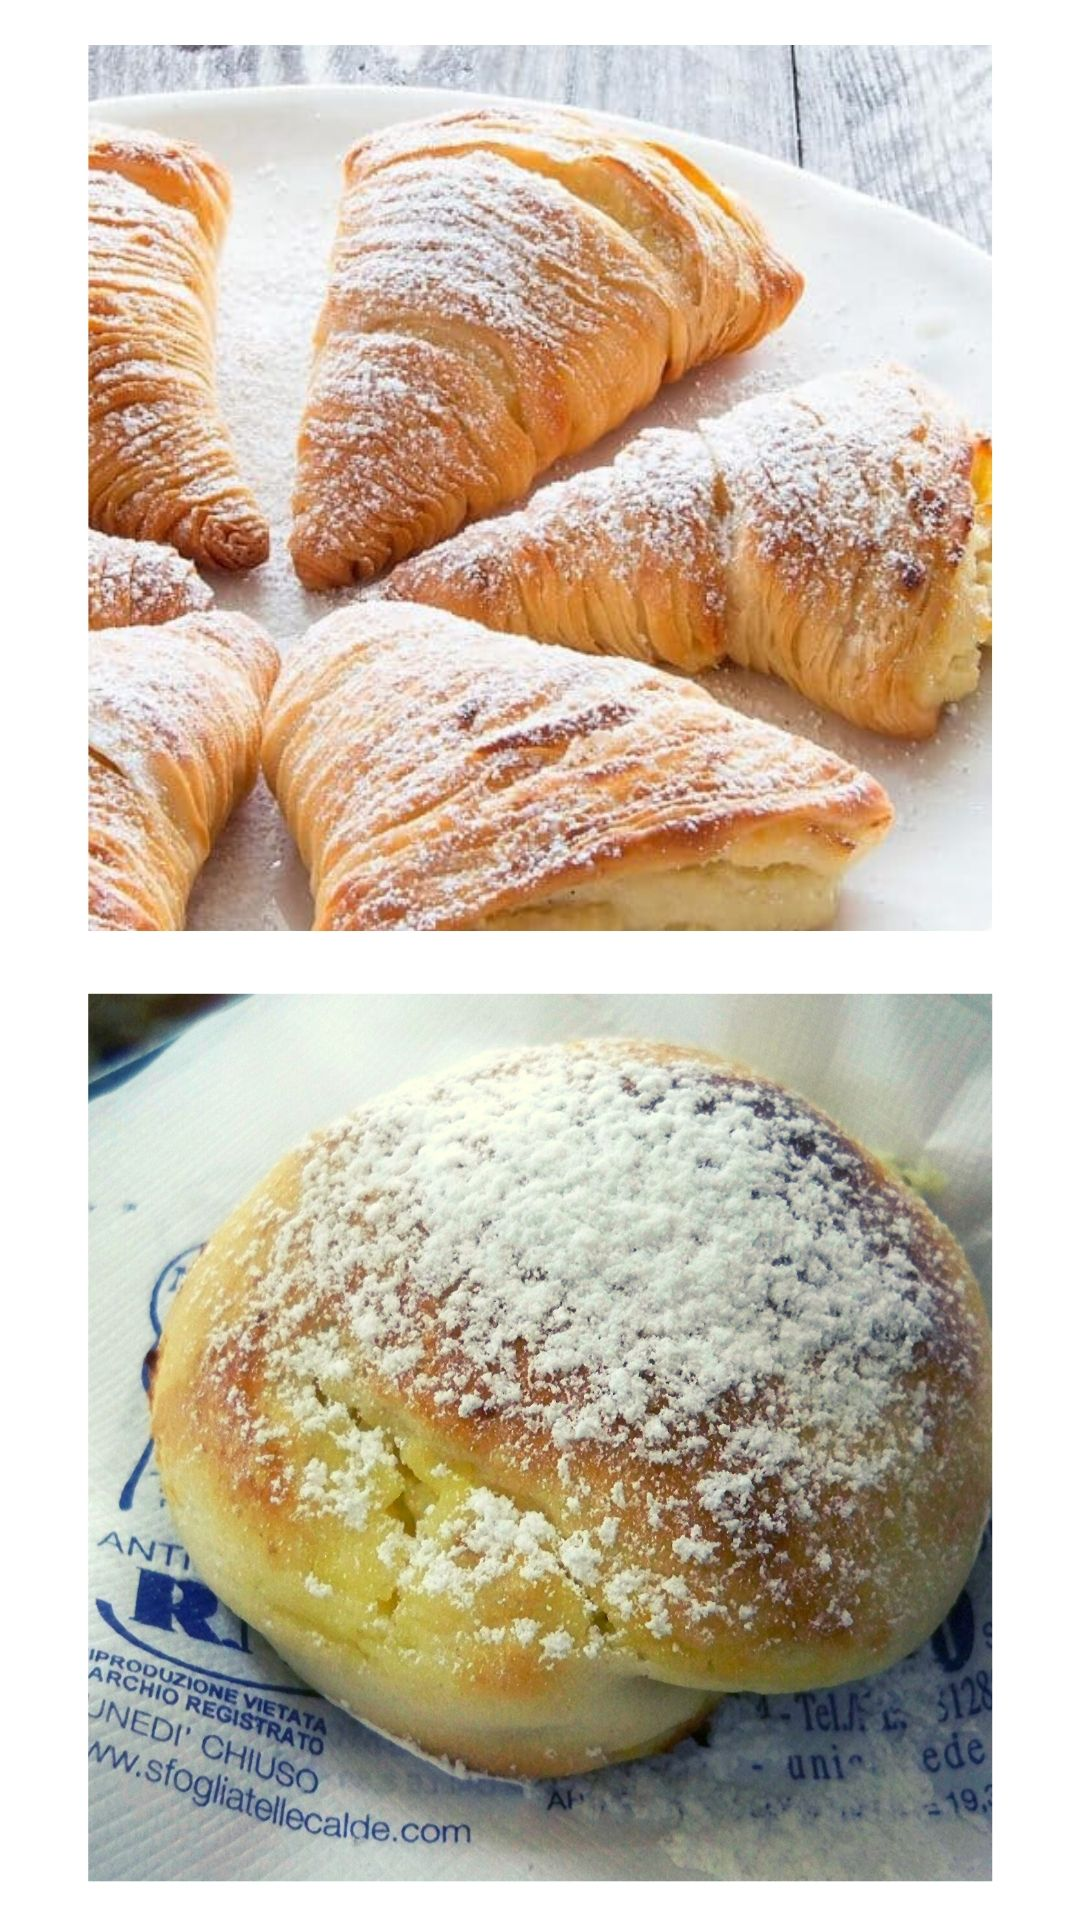 Insanely Delicious Food To Eat In Naples- Sfogliatelle